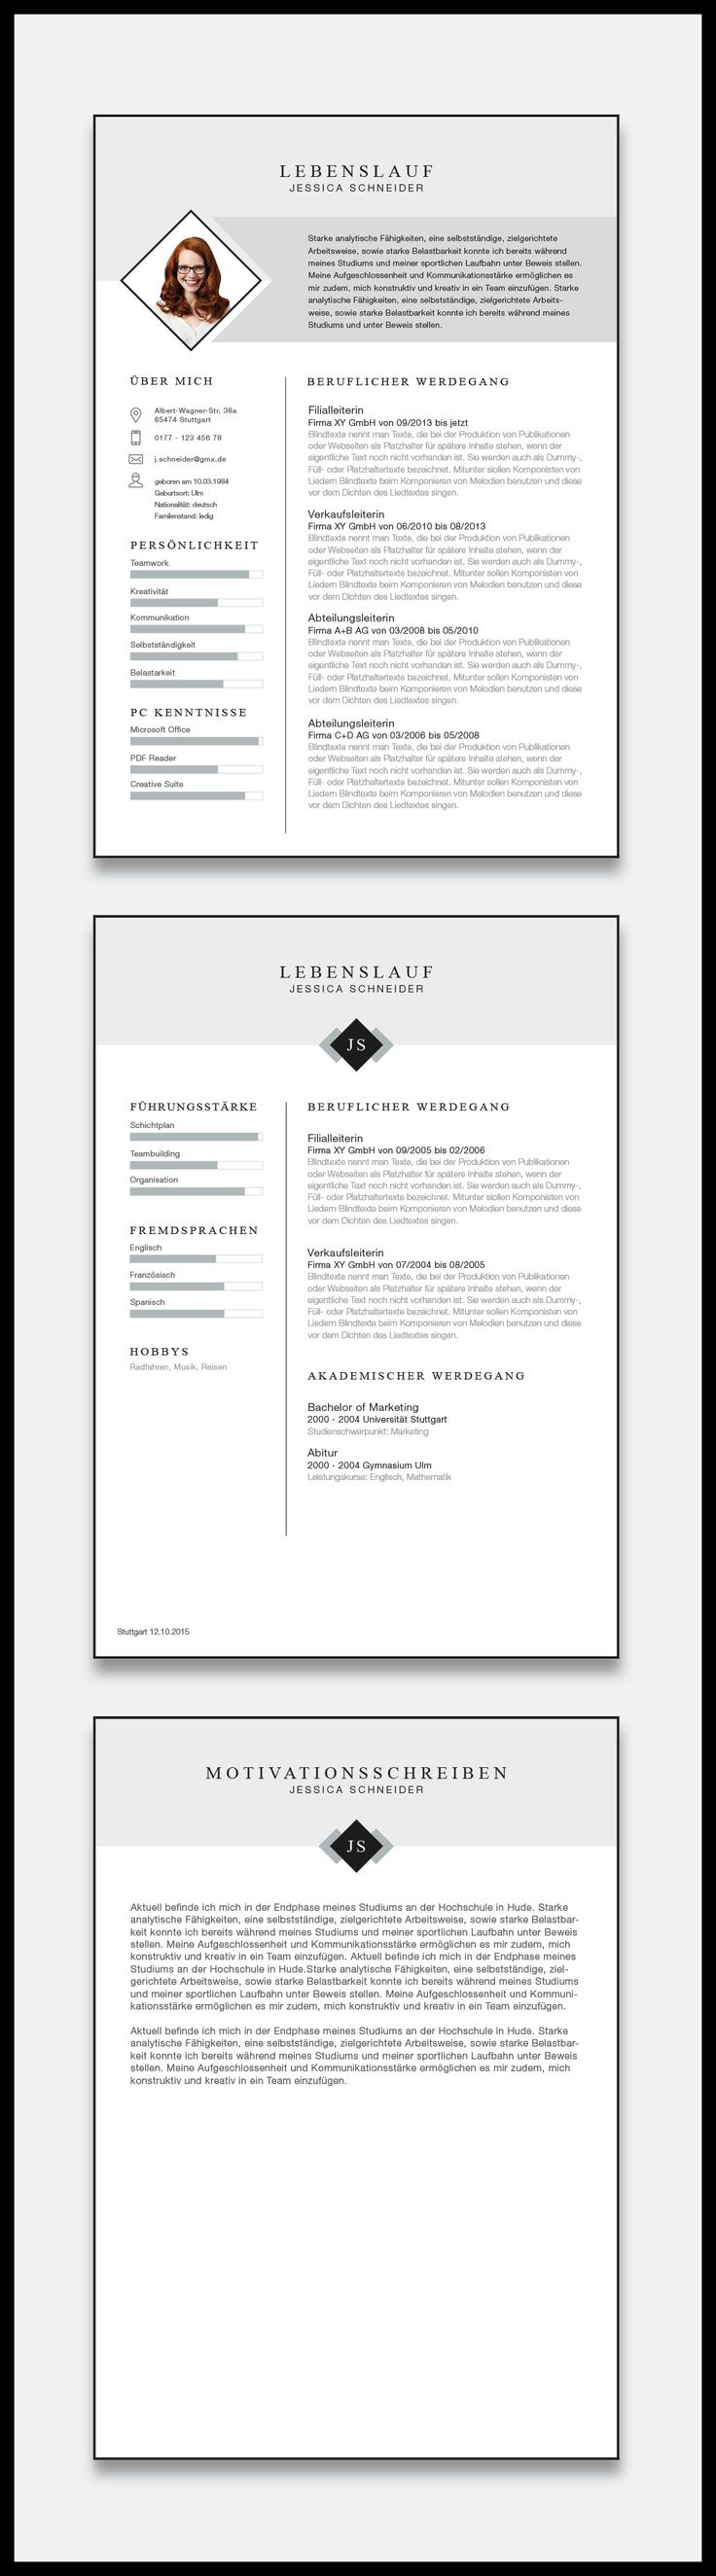 16 best Bewerbung Deckblatt Layout images on Pinterest | Career ...